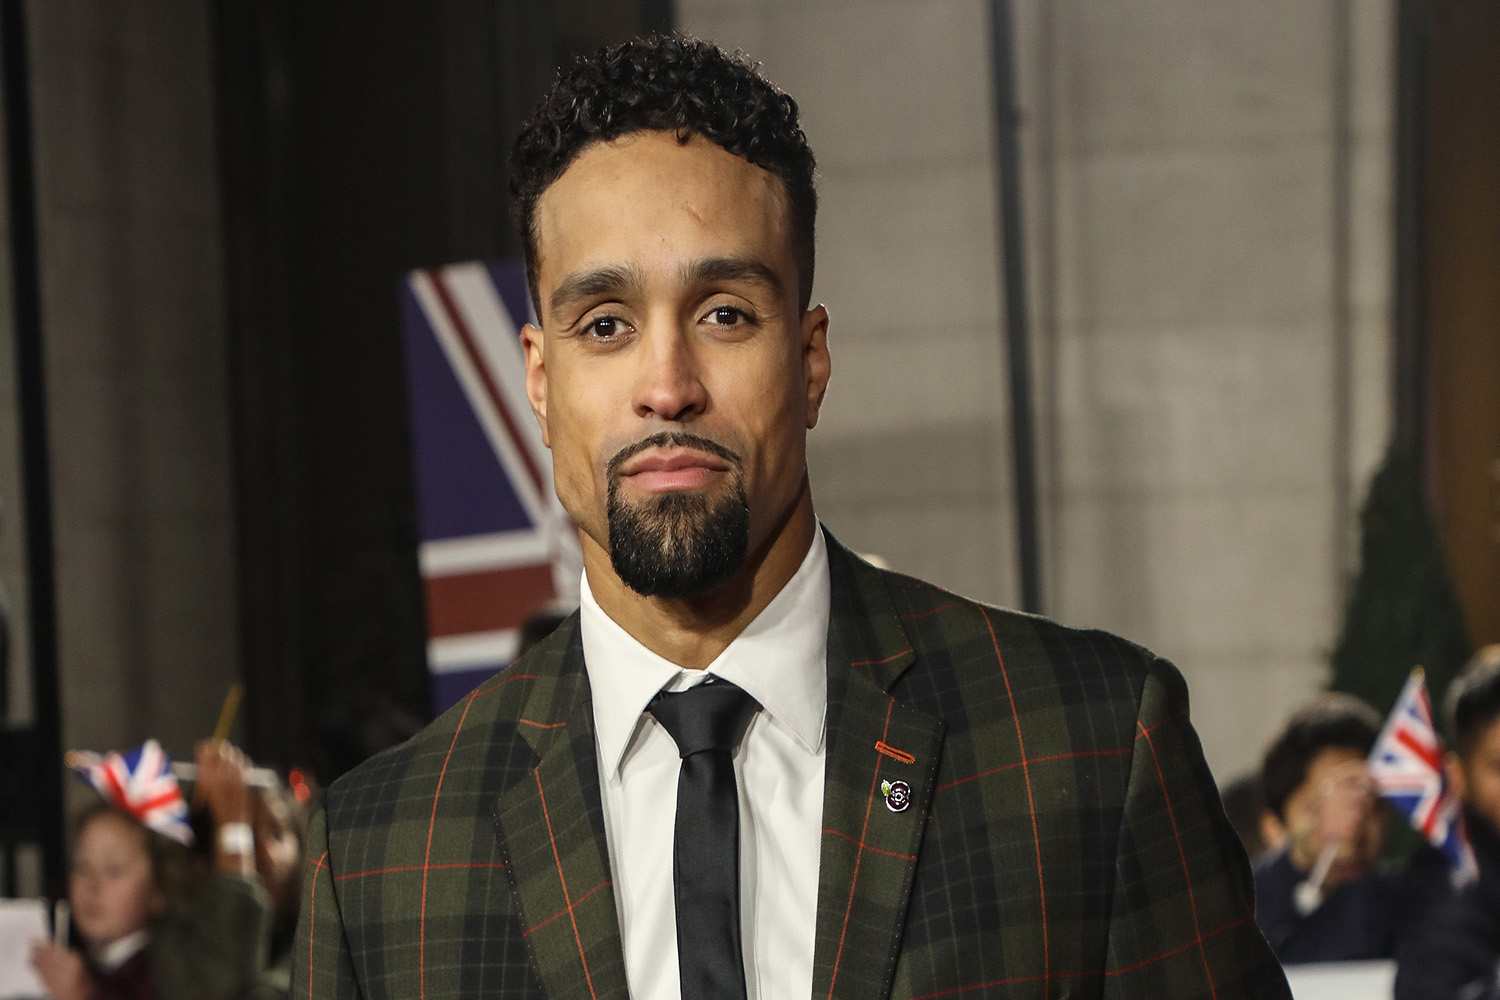 Ashley Banjo shares glimpse of newborn son's face after becoming dad again